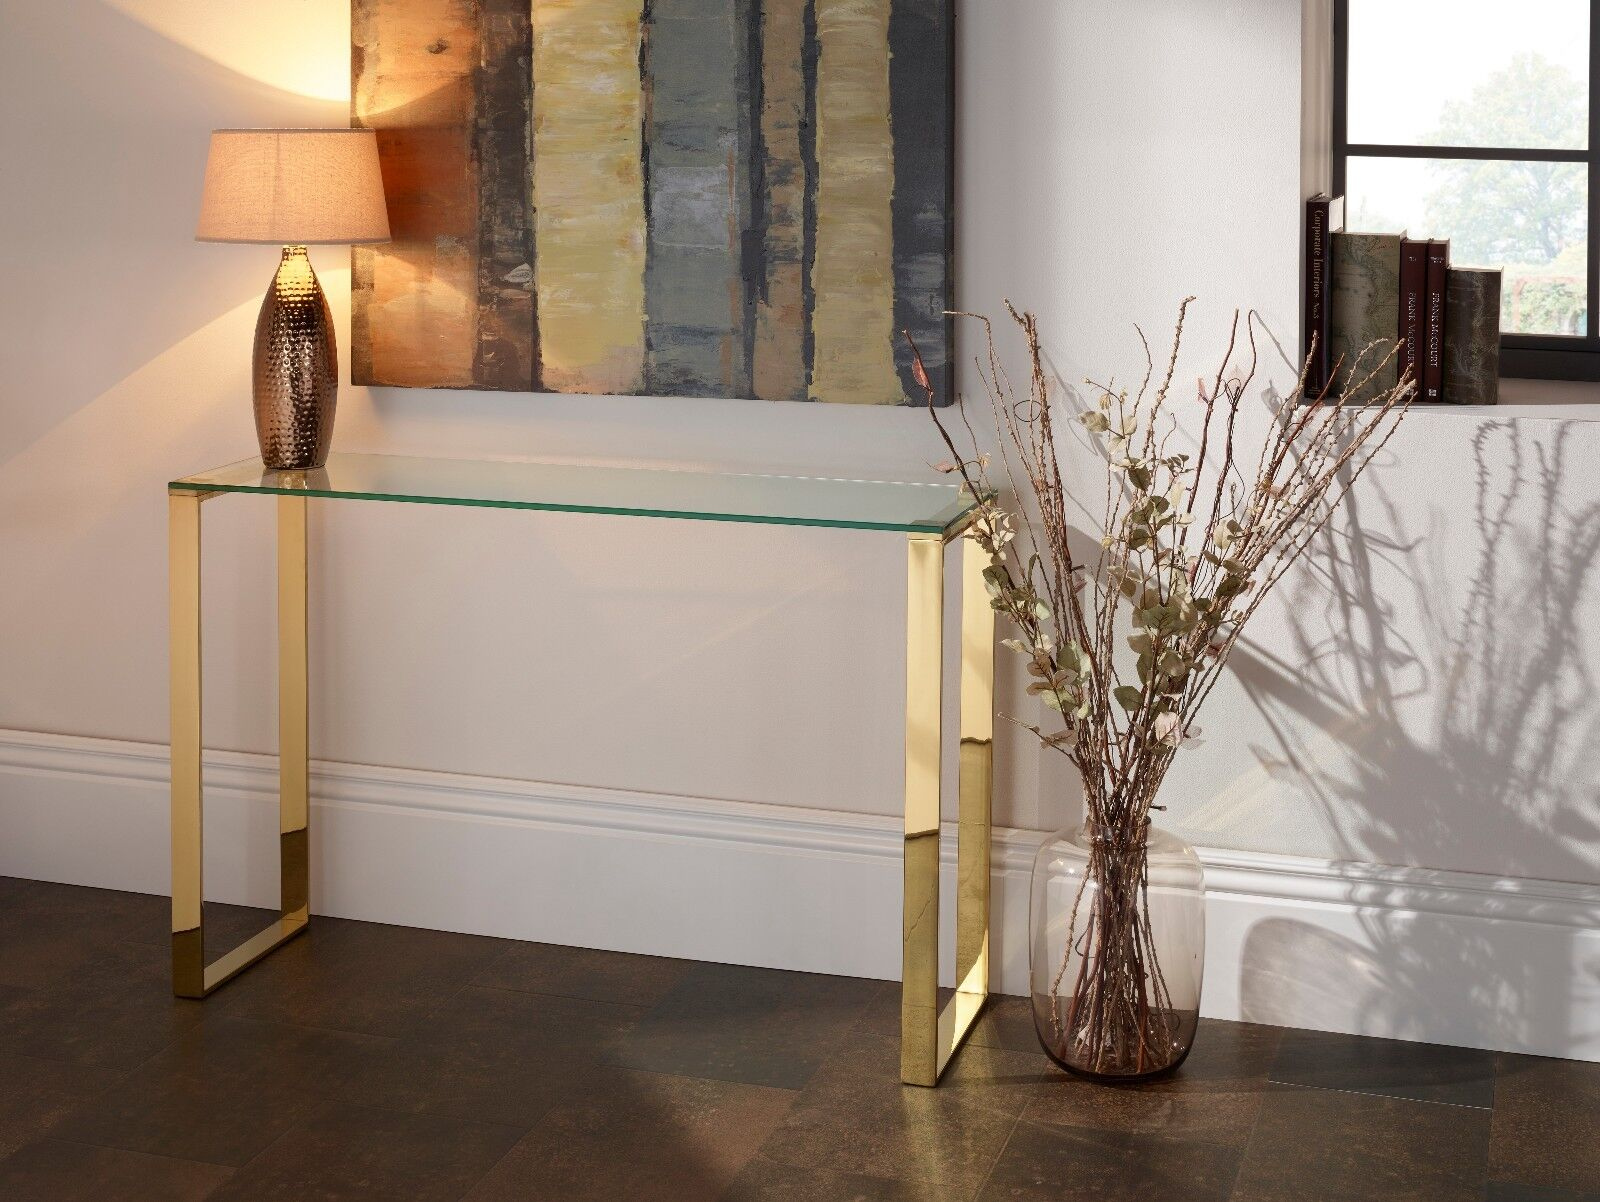 Modern hallway storage gold console table gold metal console table - Asger Glass Top Console Table In Steel Gold Or Rose Gold Metal Frame